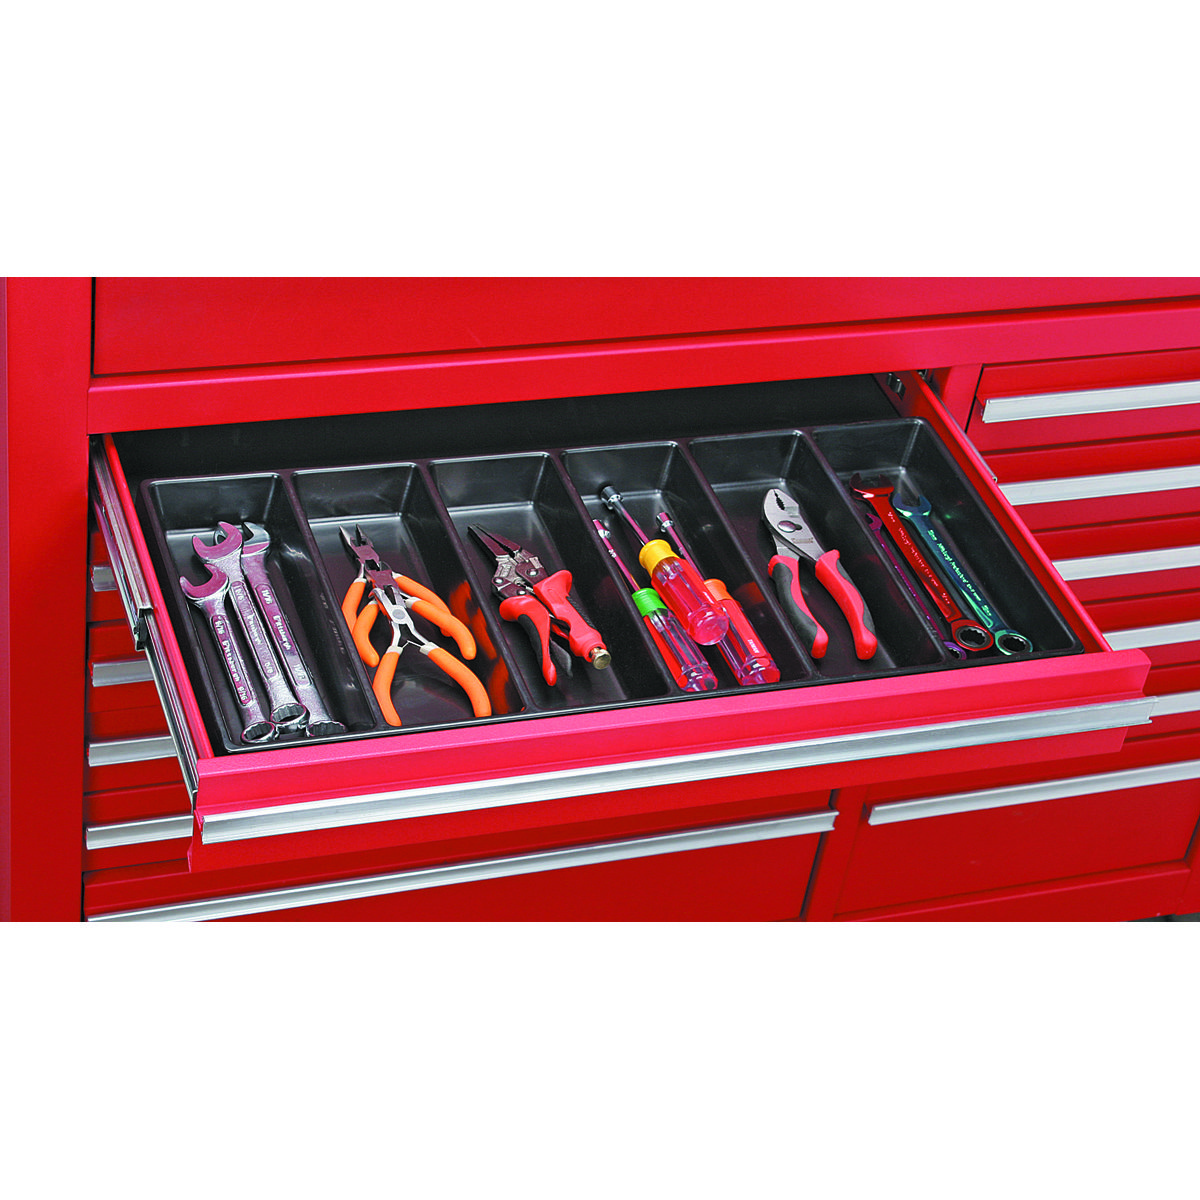 6 Compartment Drawer Organizer In 2020 Tool Chest Organization Tool Drawer Organizer Drawer Organisers